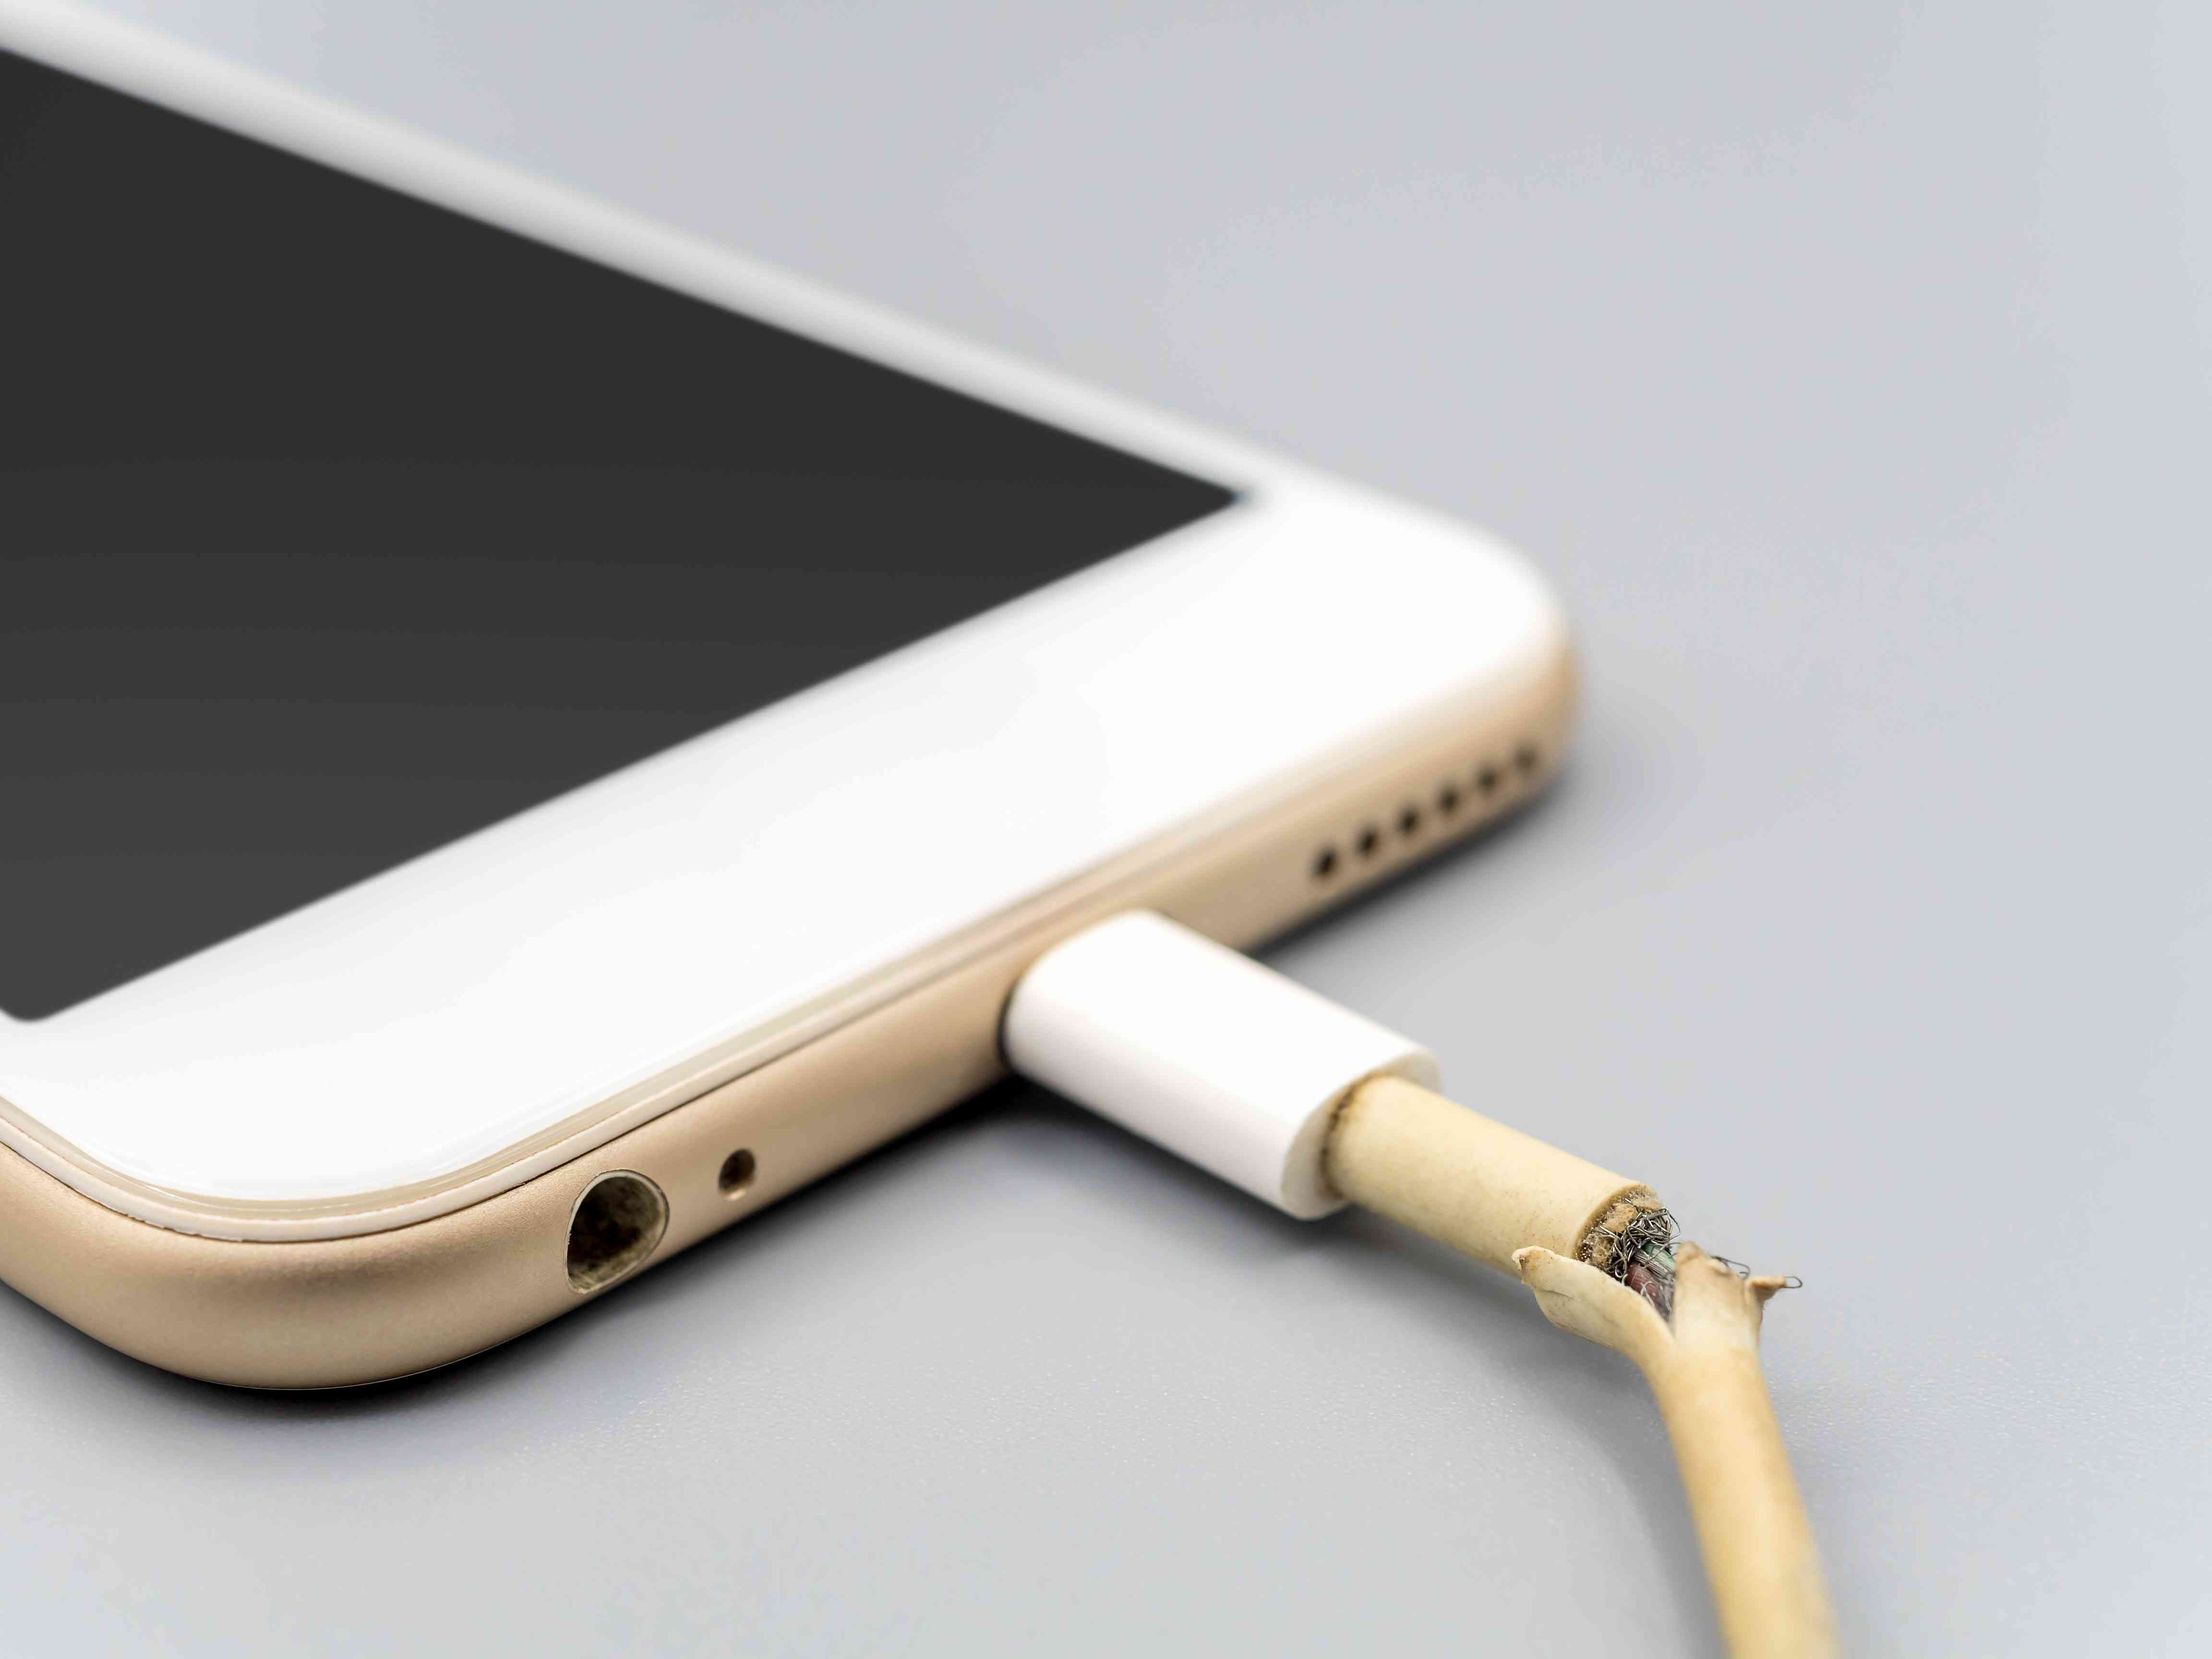 A damaged Lightning cable plugged into an iPhone.